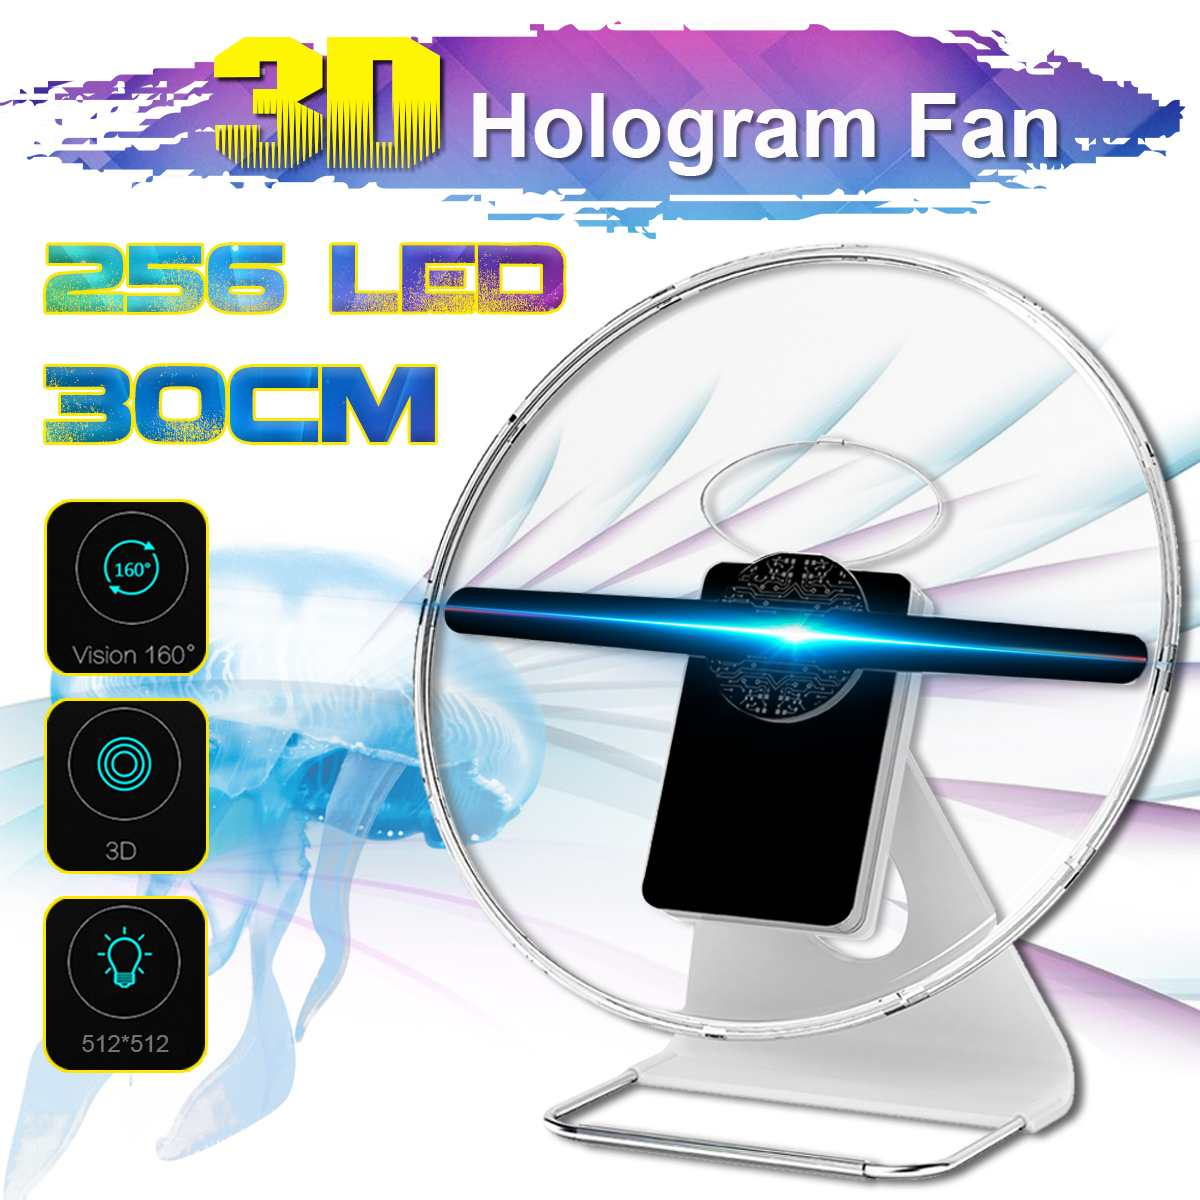 Portable 30CM 3D Holographic Projector With Battery Hologram Player LED Display Fan Advertising Light APP Control